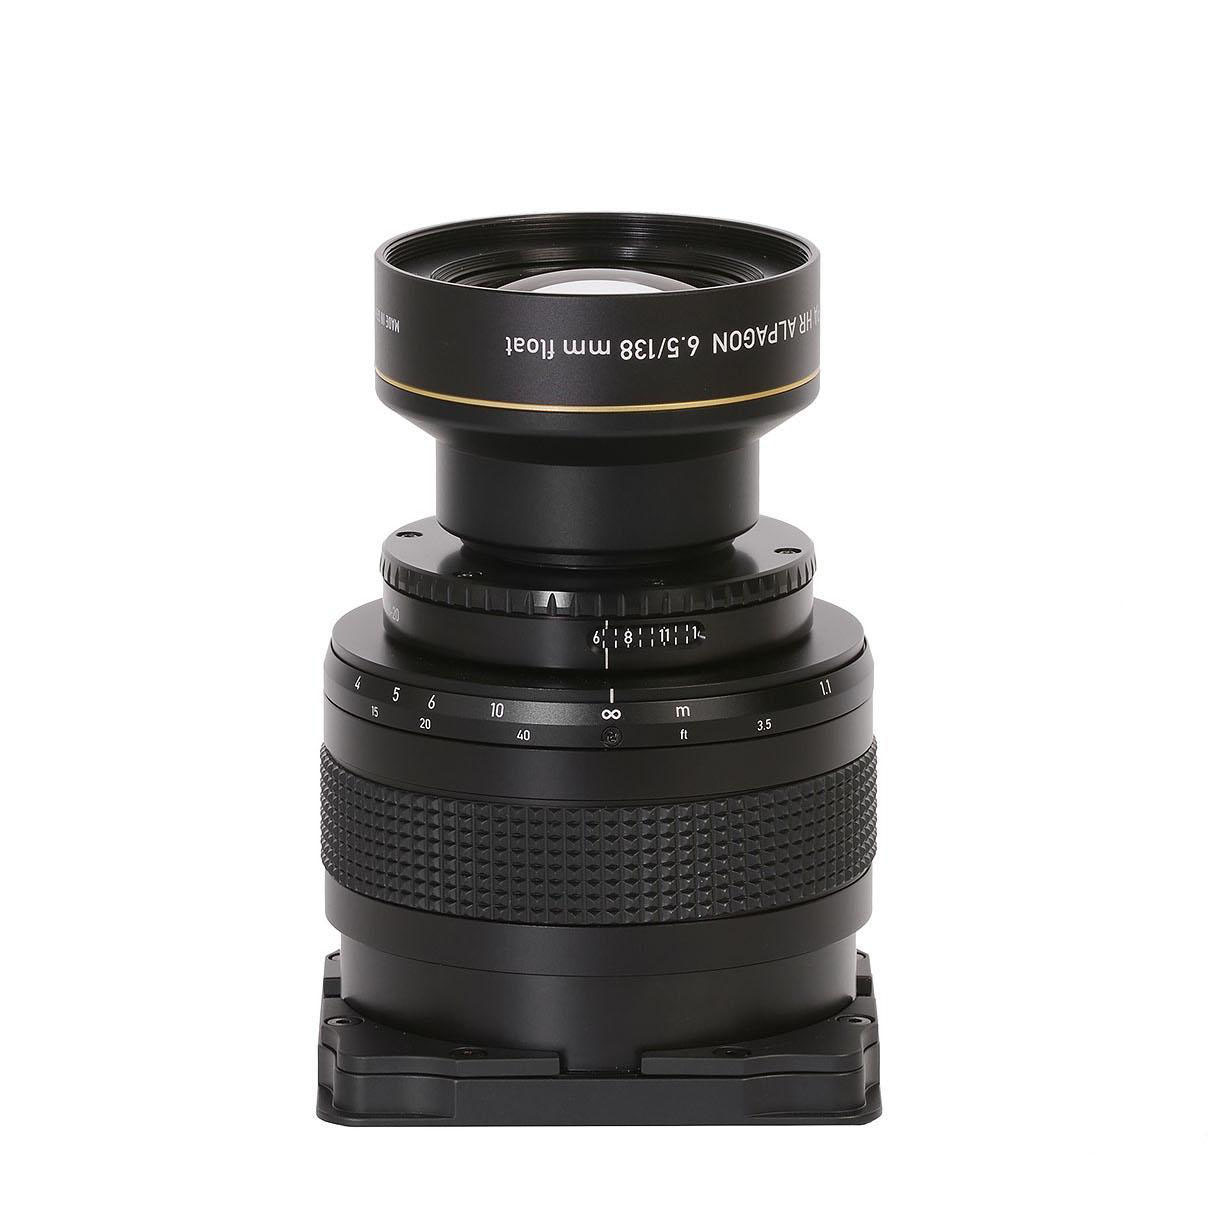 Rodenstock / ALPA HR Alpagon 6.5/138 mm, with Floating Element, SB51, in Aperture Unit